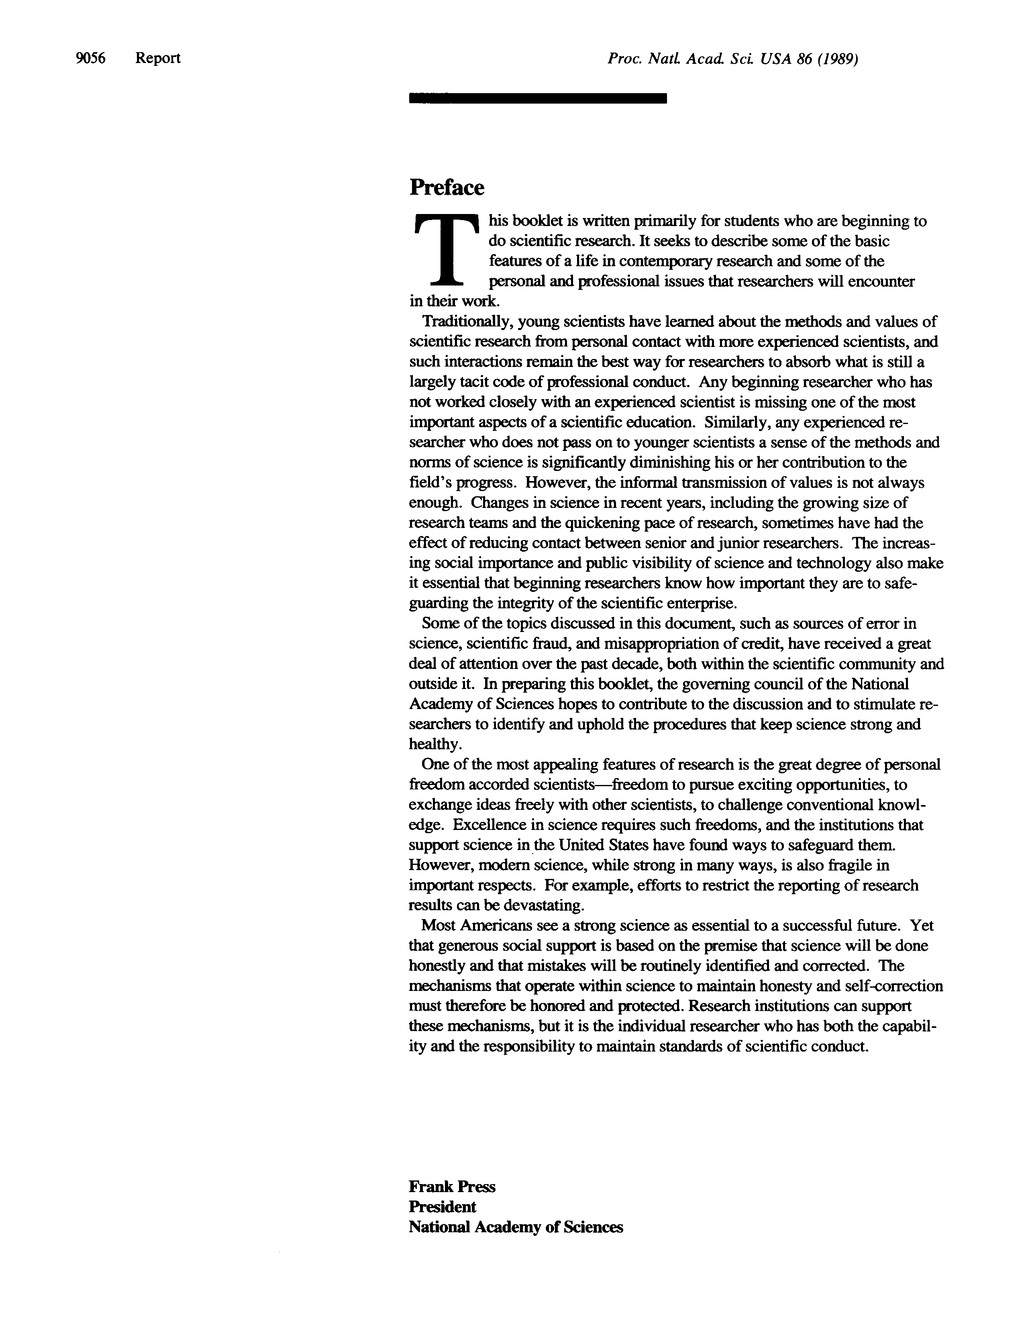 Proc. Natl. Acad. Sci USA 86 (1989) Preface T h...